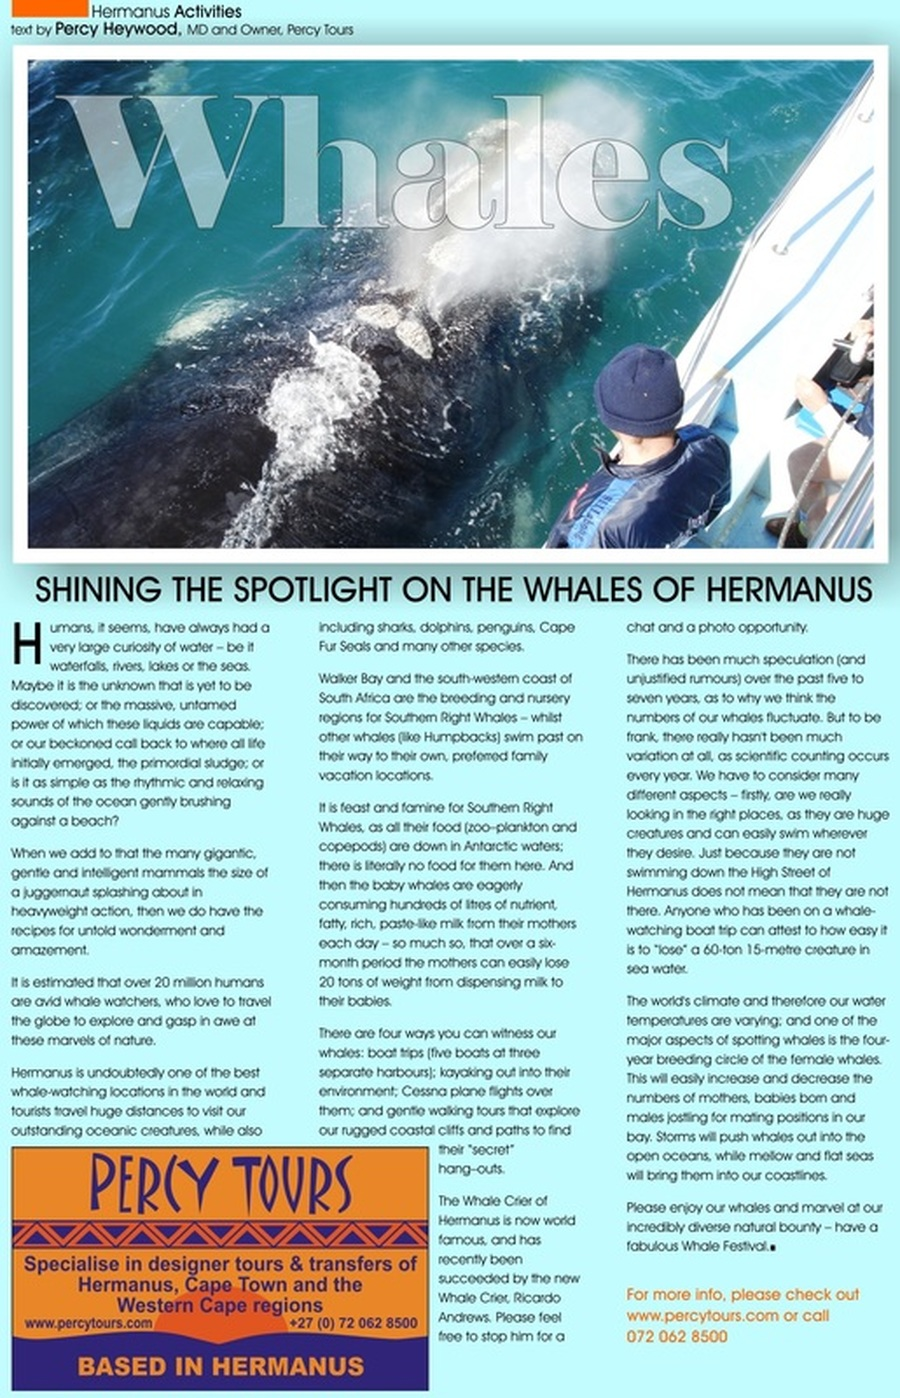 Whales and Whale Watching in Hermanus, South Africa